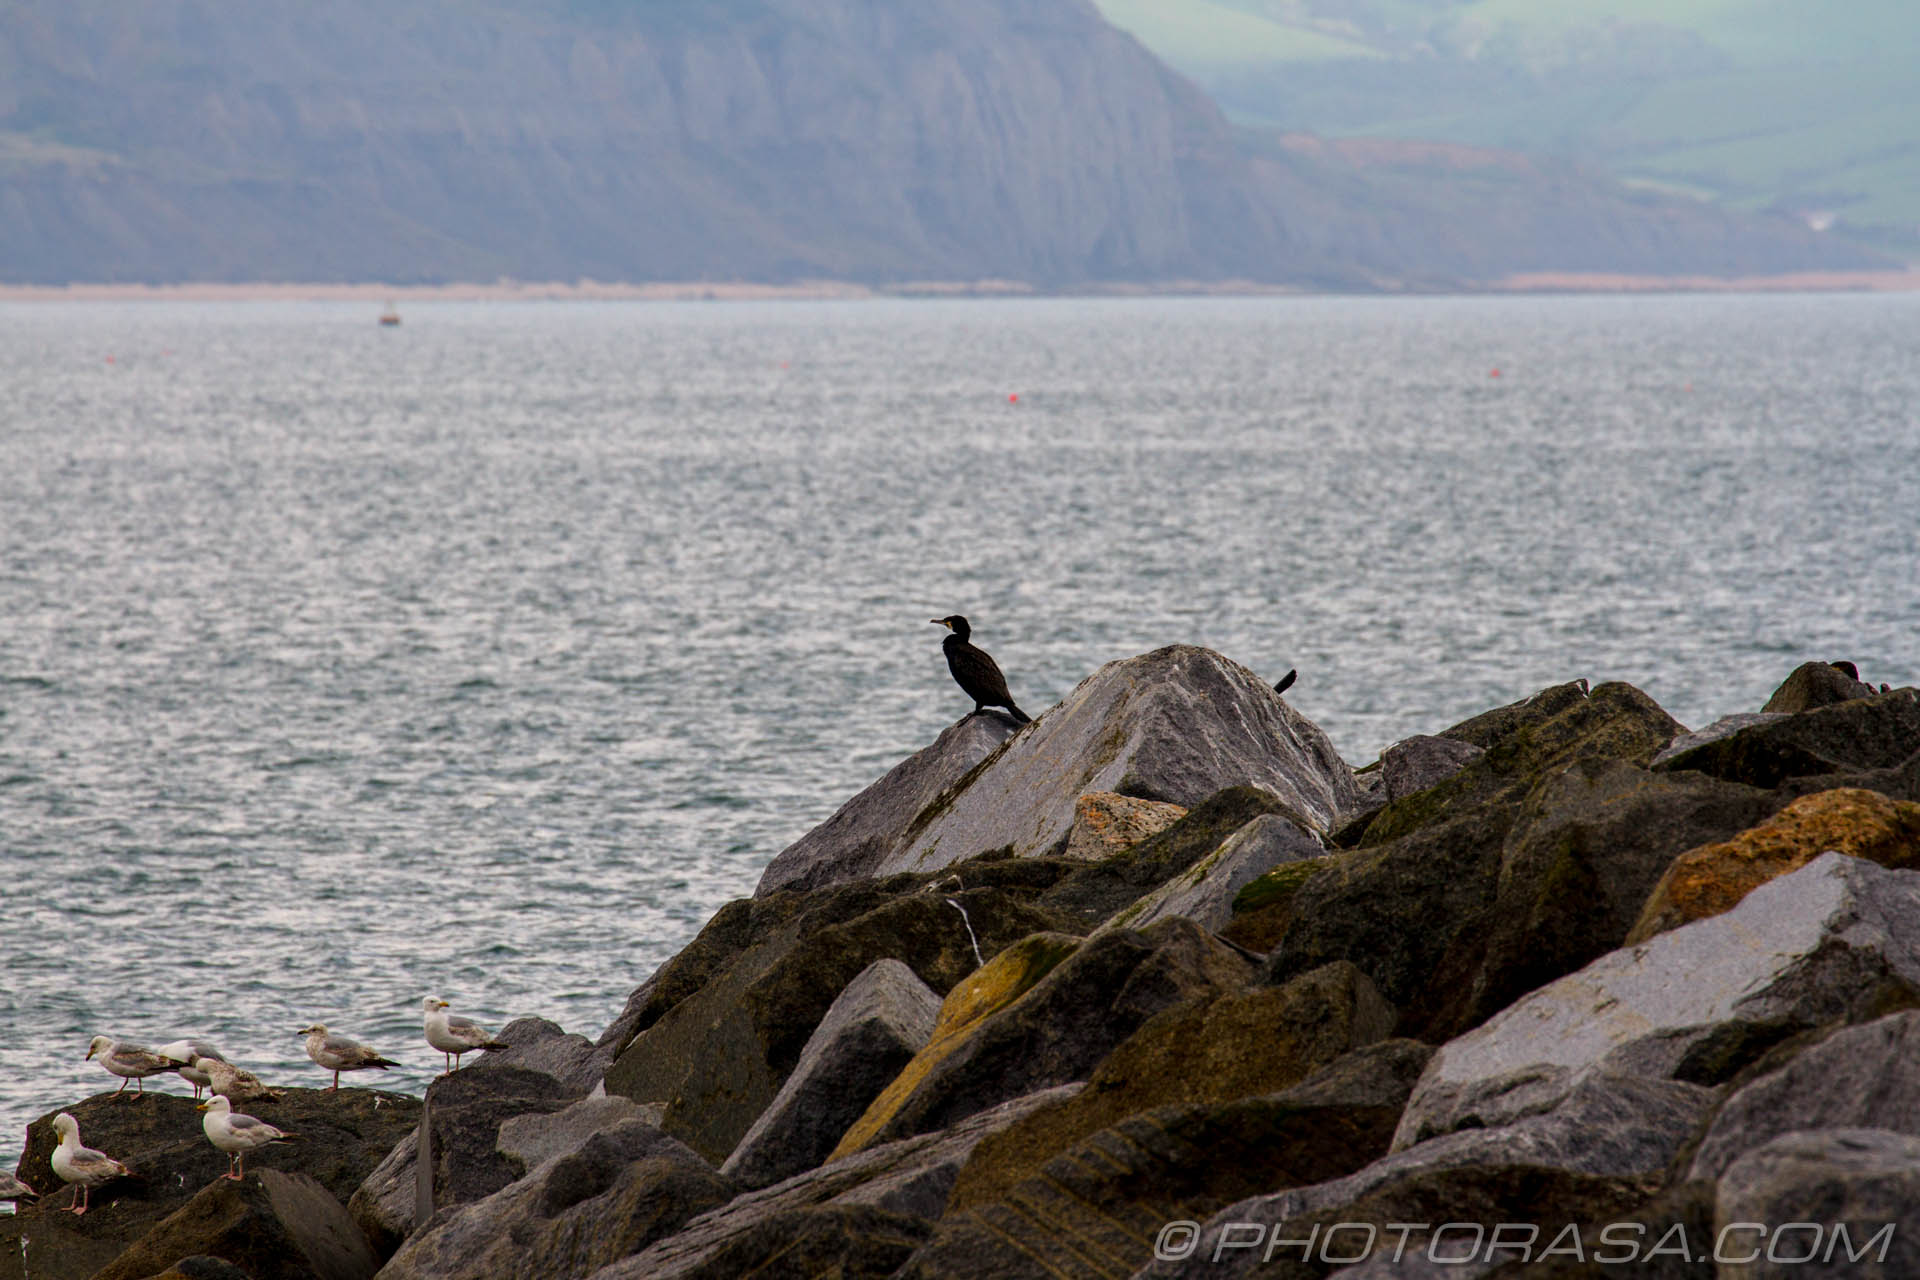 http://photorasa.com/lyme-regis/cormorant-on-the-rocks/